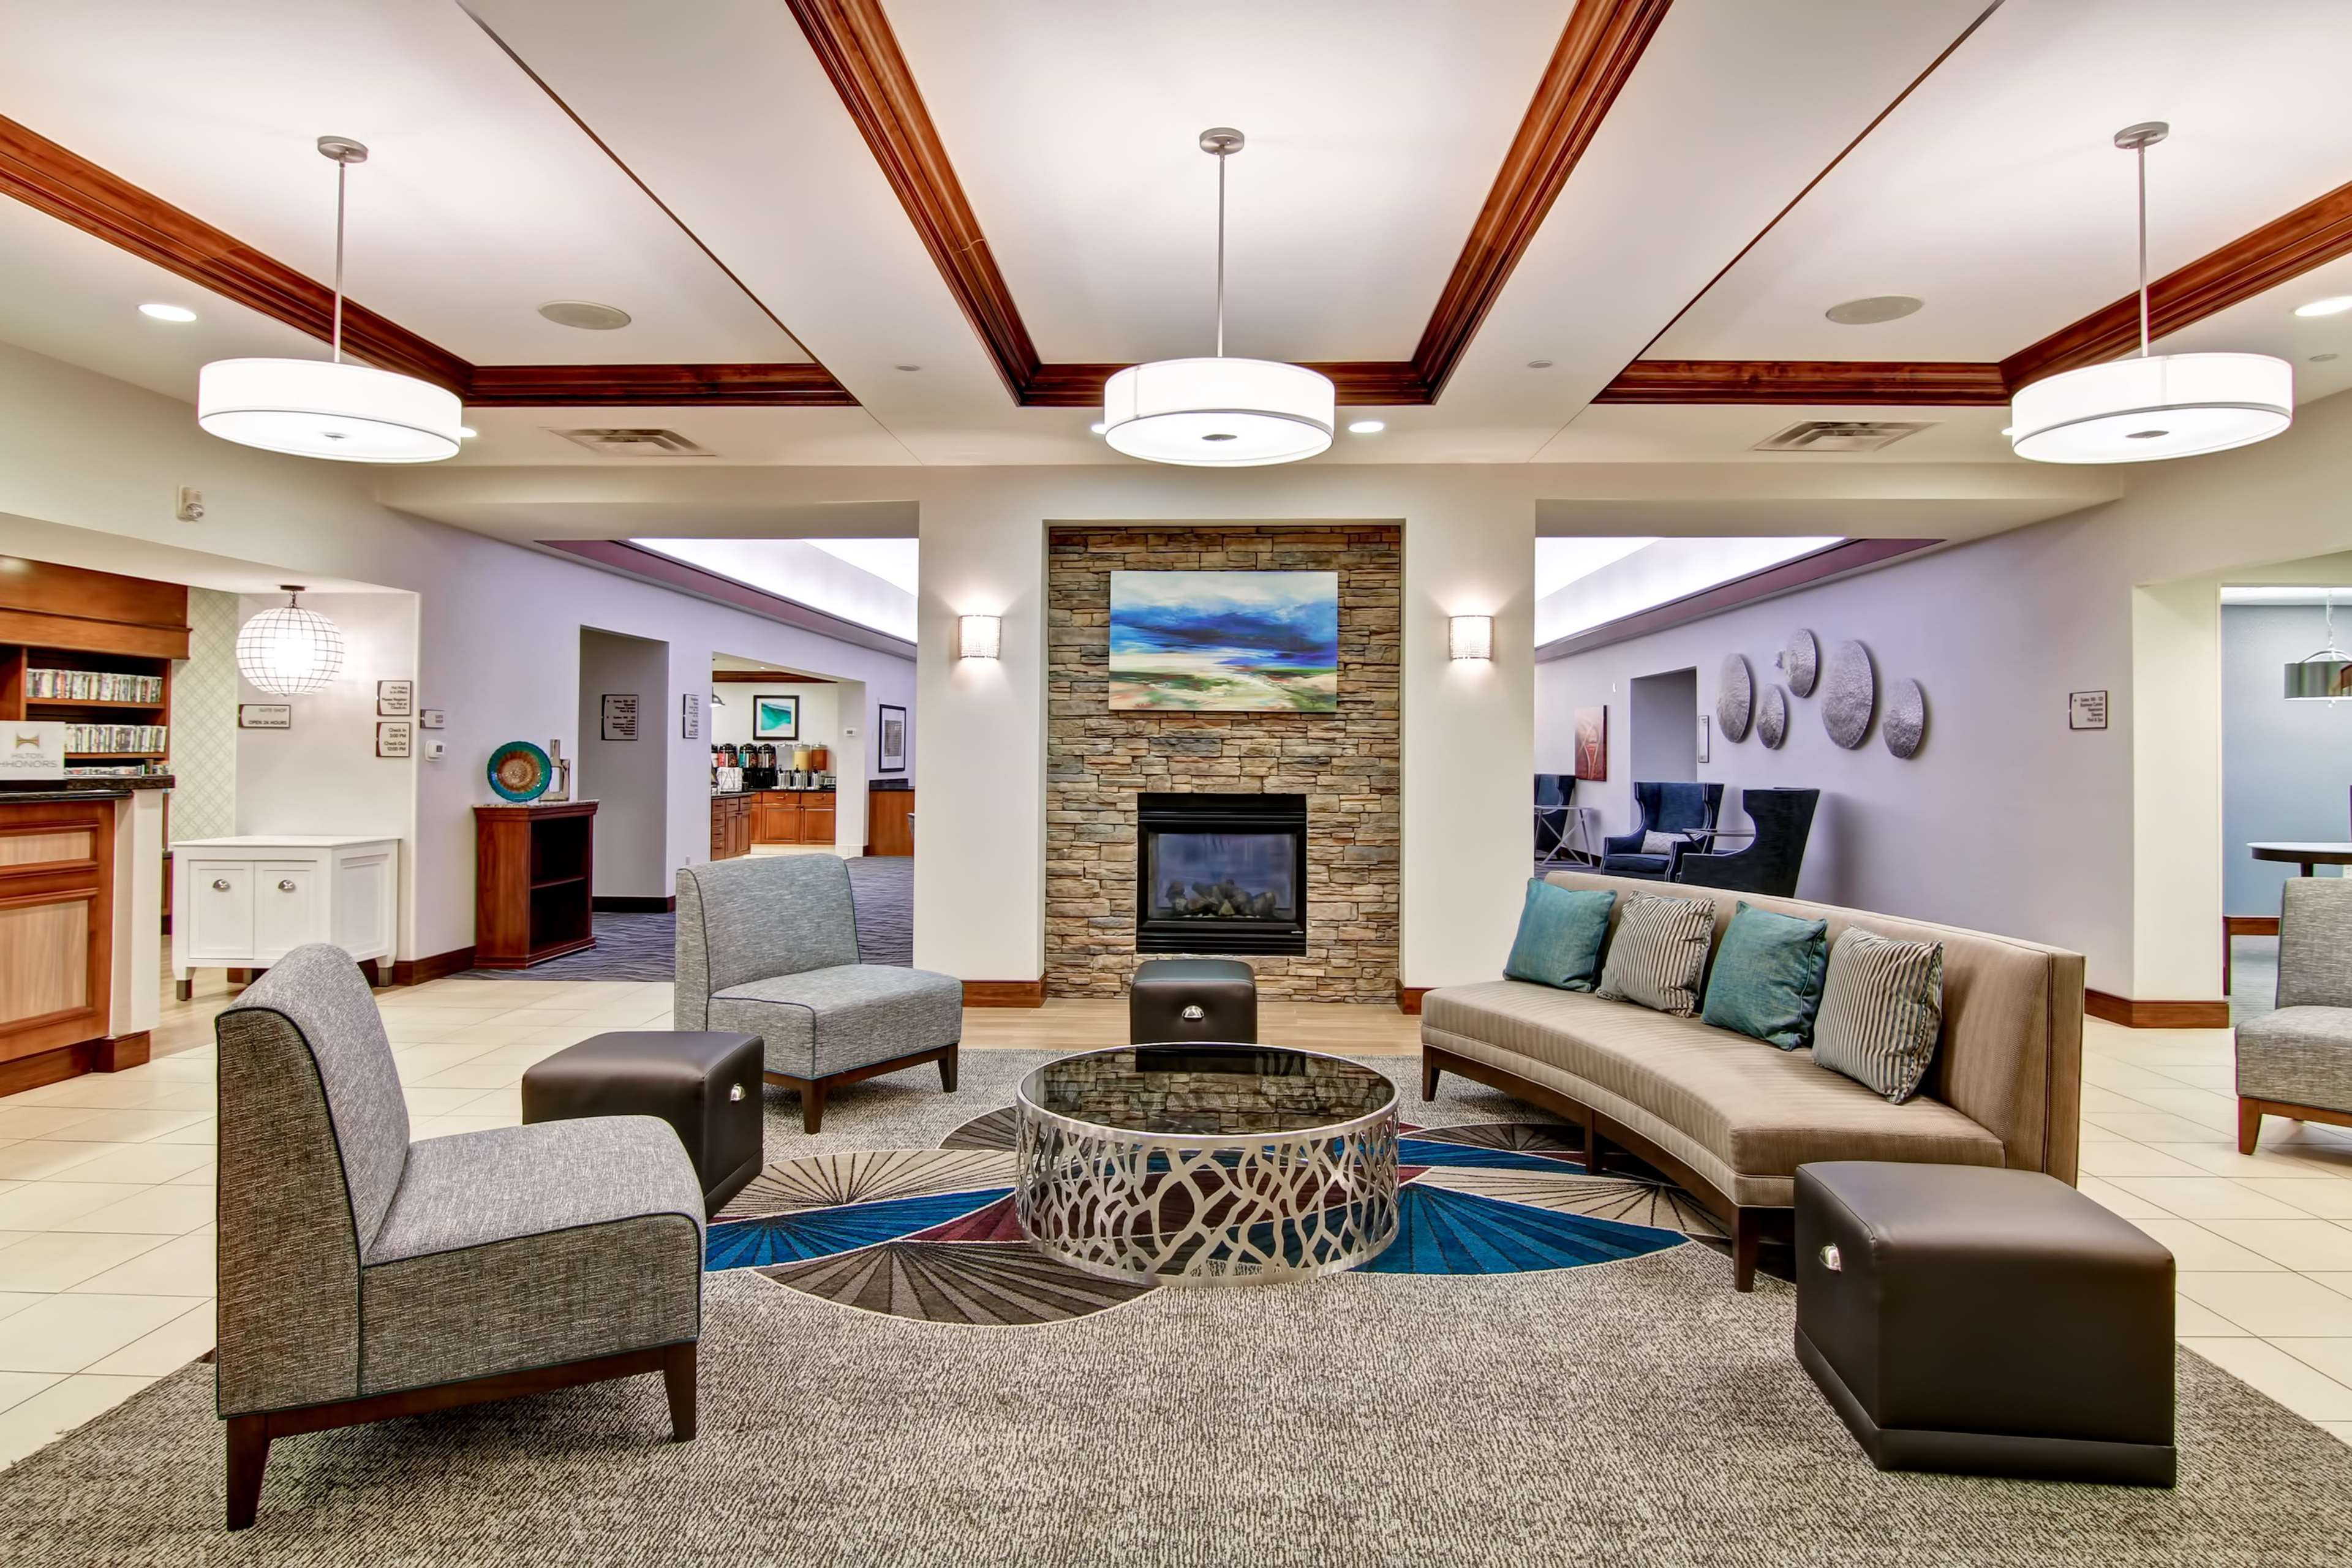 Homewood Suites by Hilton Bentonville-Rogers image 4